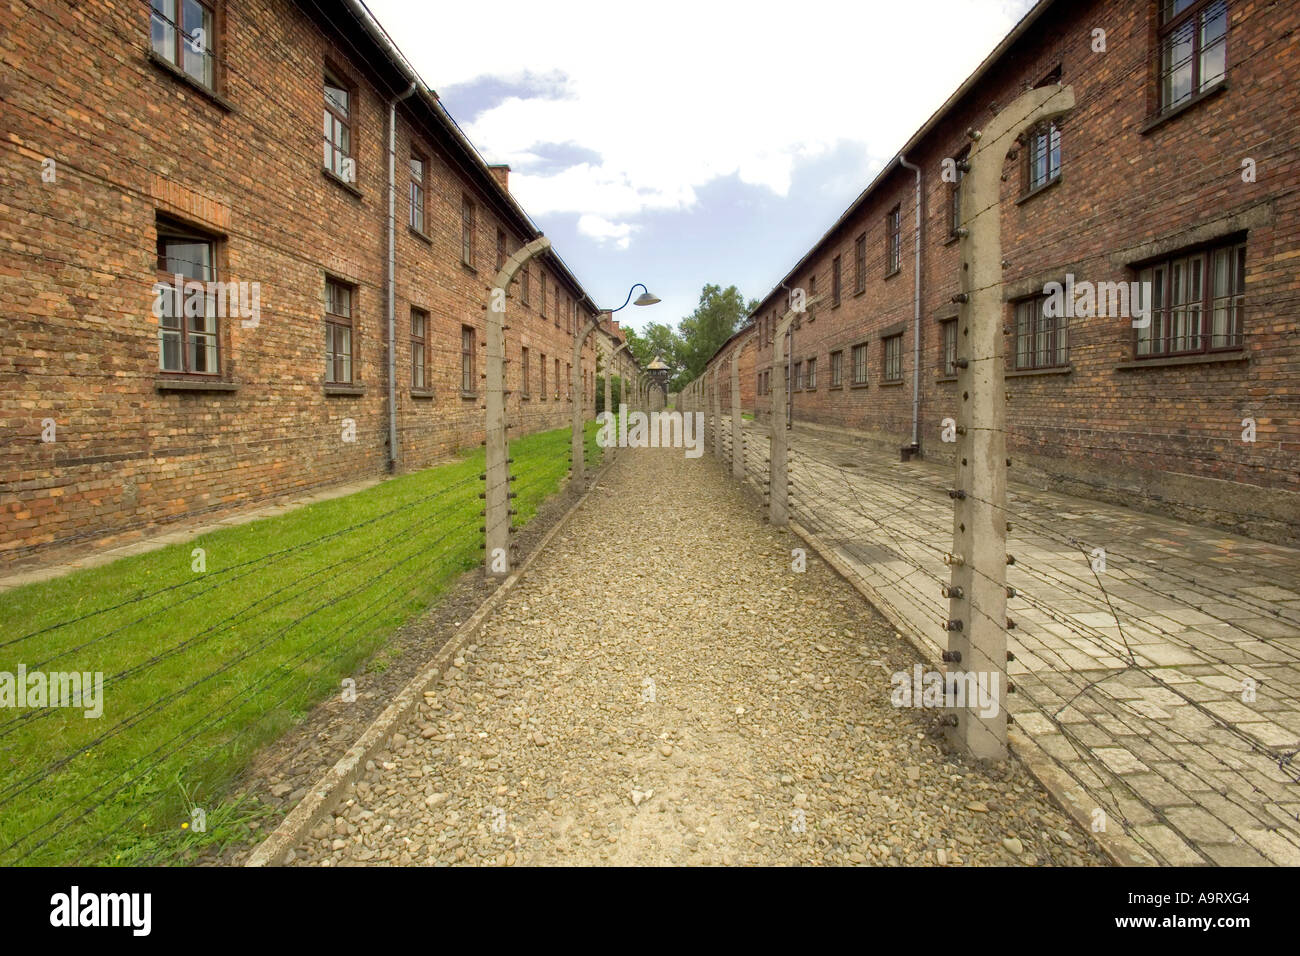 Free Images : architecture, house, building, europe ... |Concentration Camps Buildings